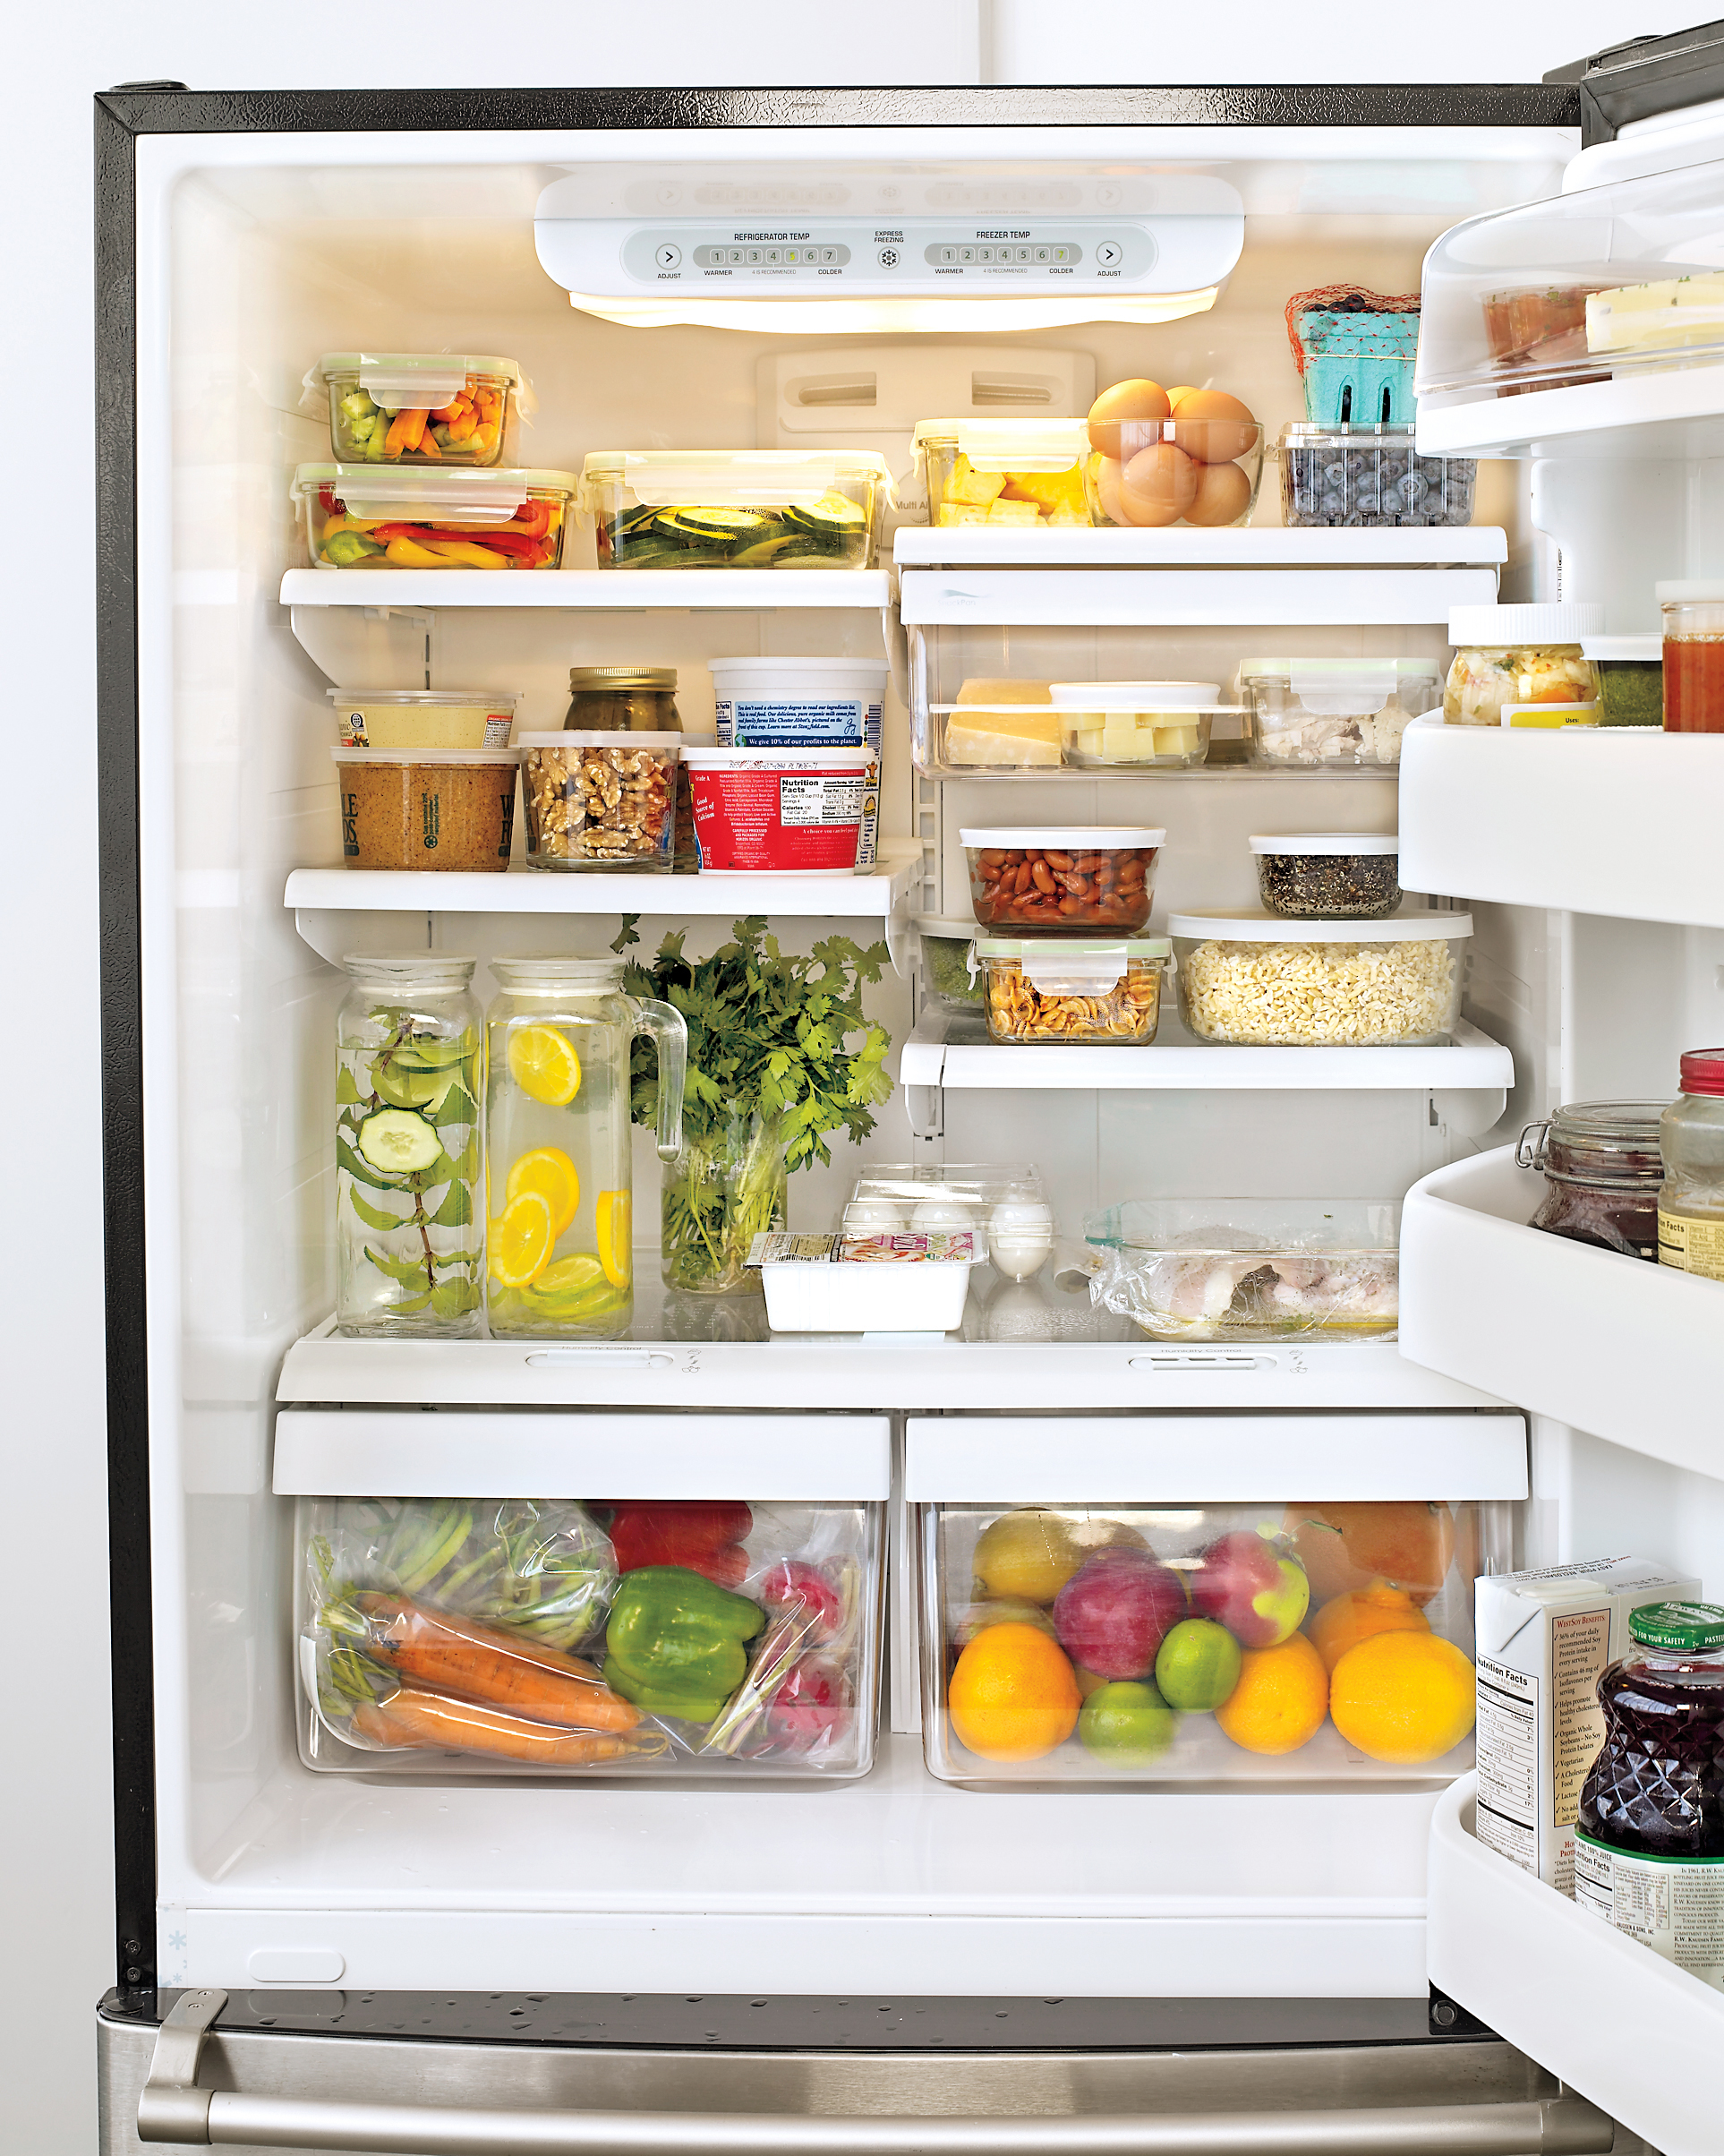 mbd105166_1109_fridge6.jpg